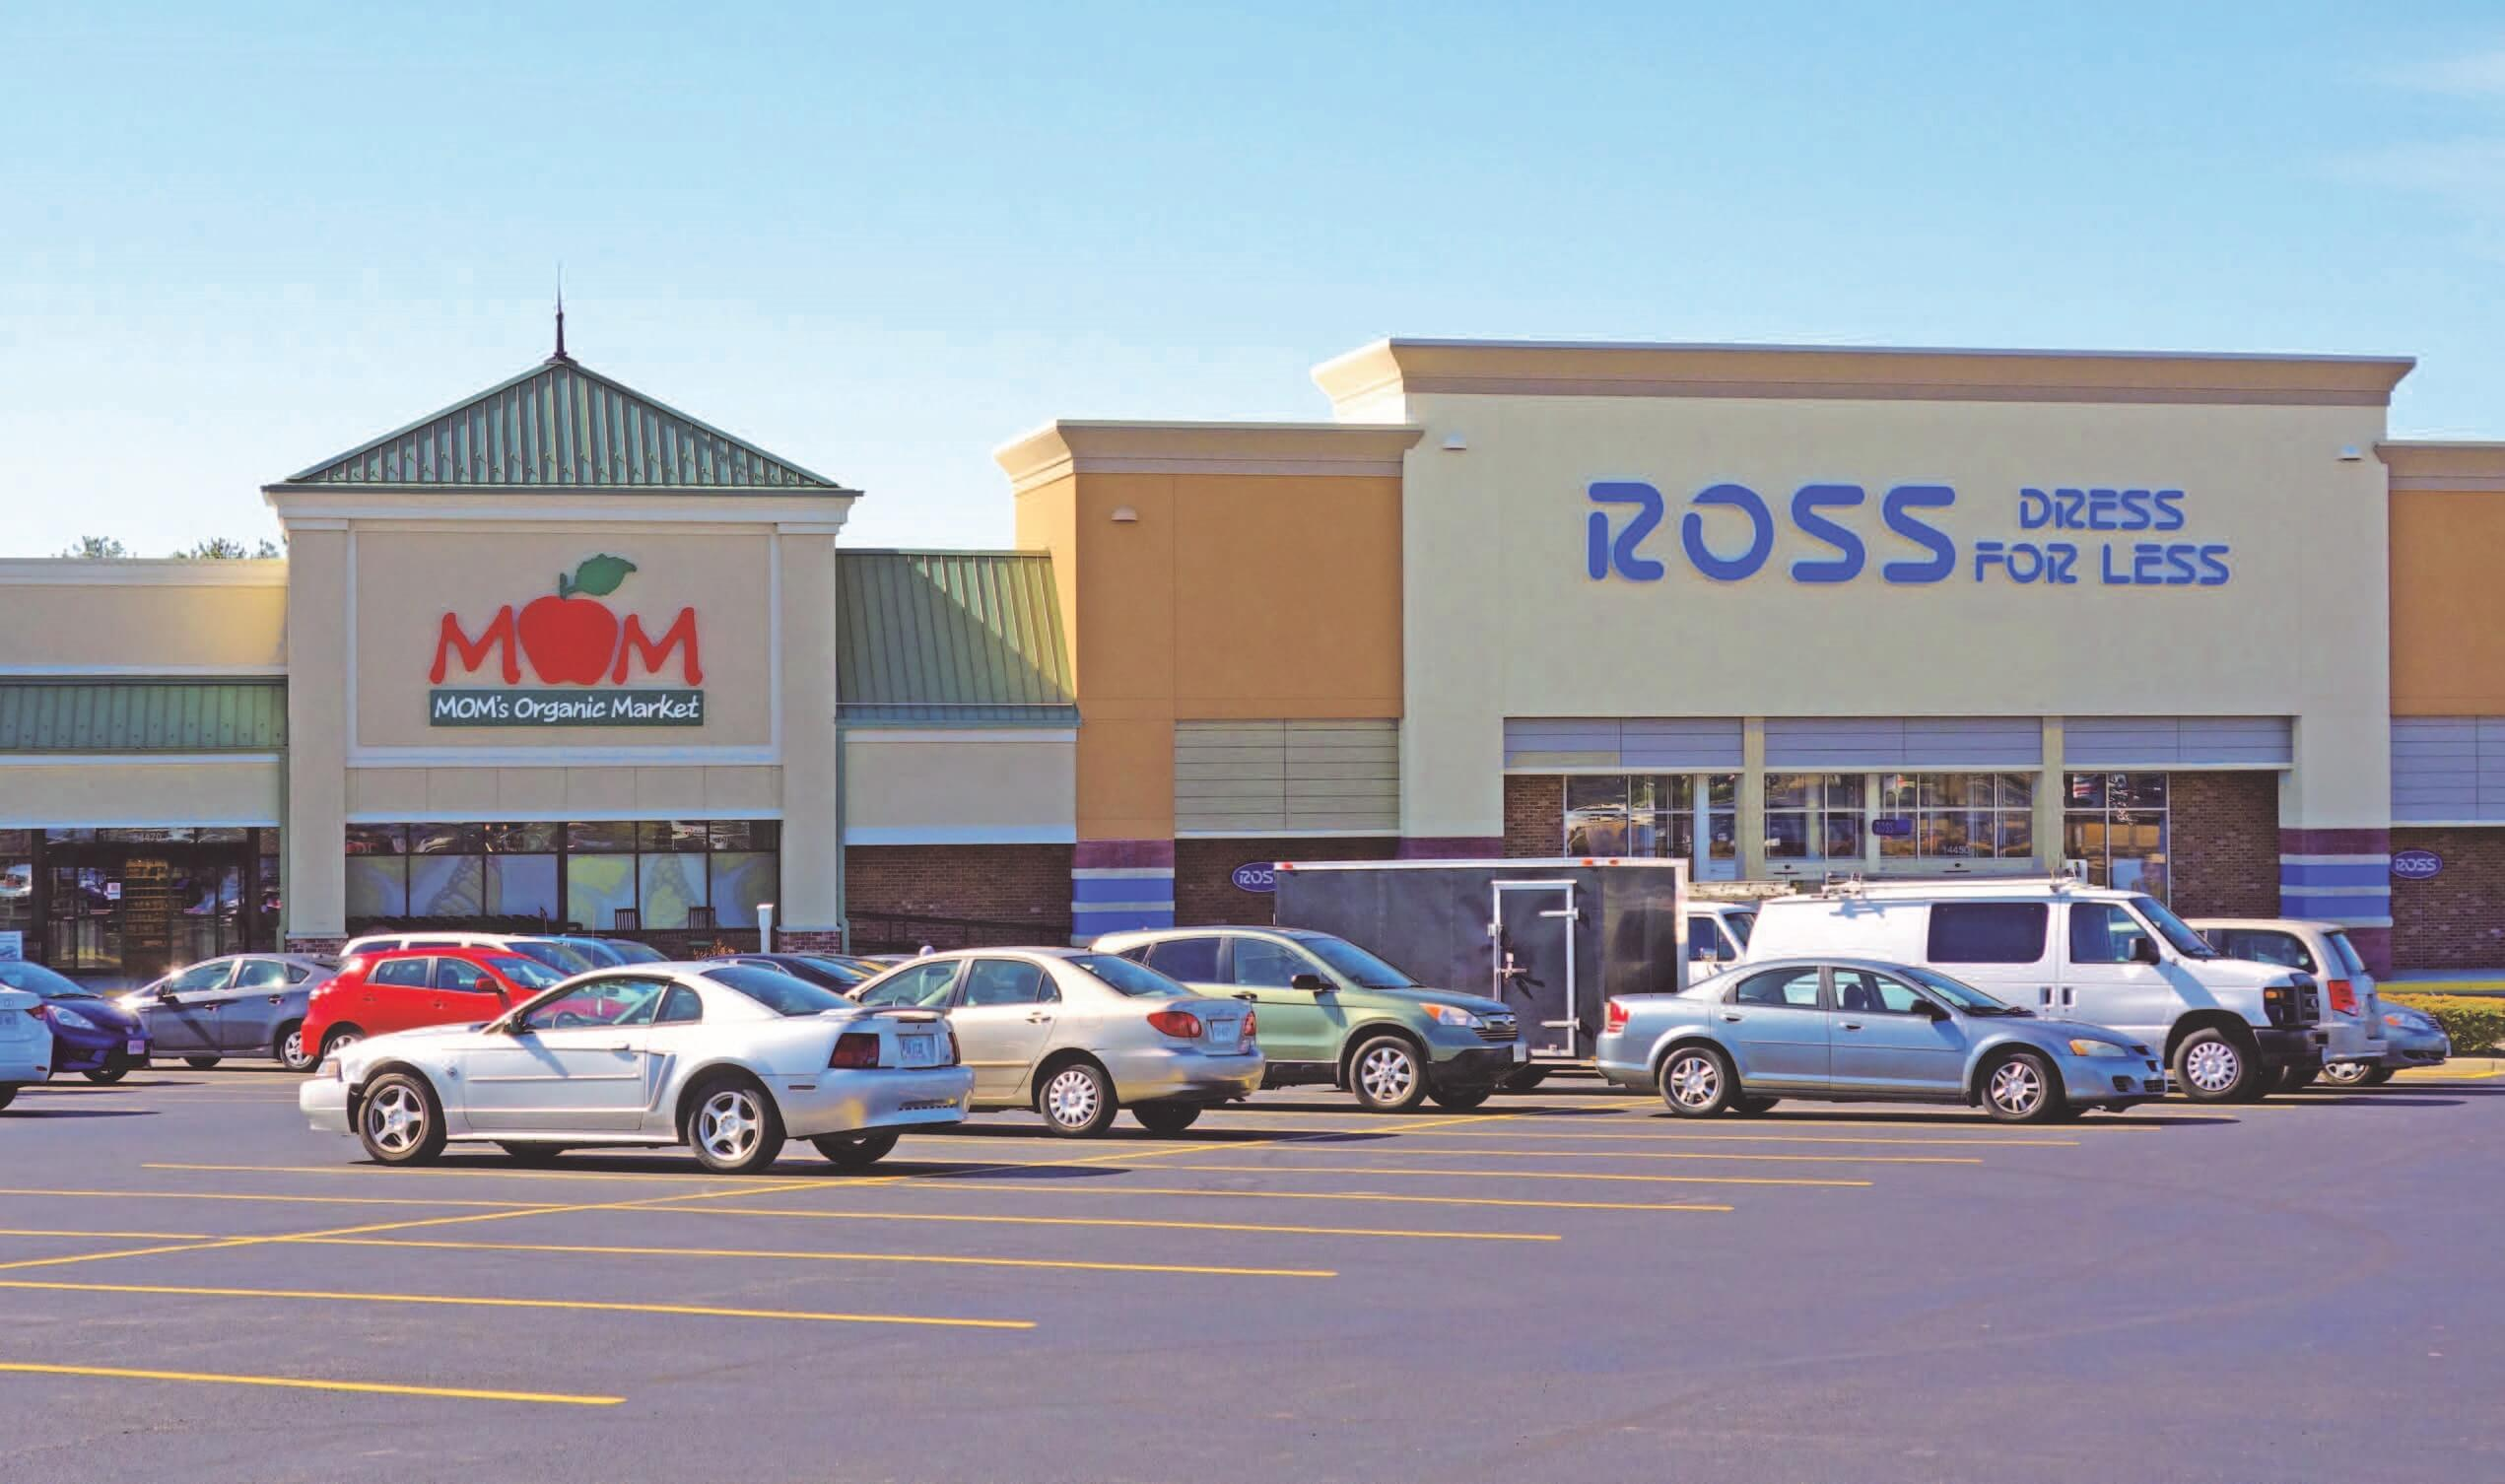 ALTO Real Estate Funds Acquires Prince William Square Shopping Center In Woodbridge, Virginia For $37.85 Million